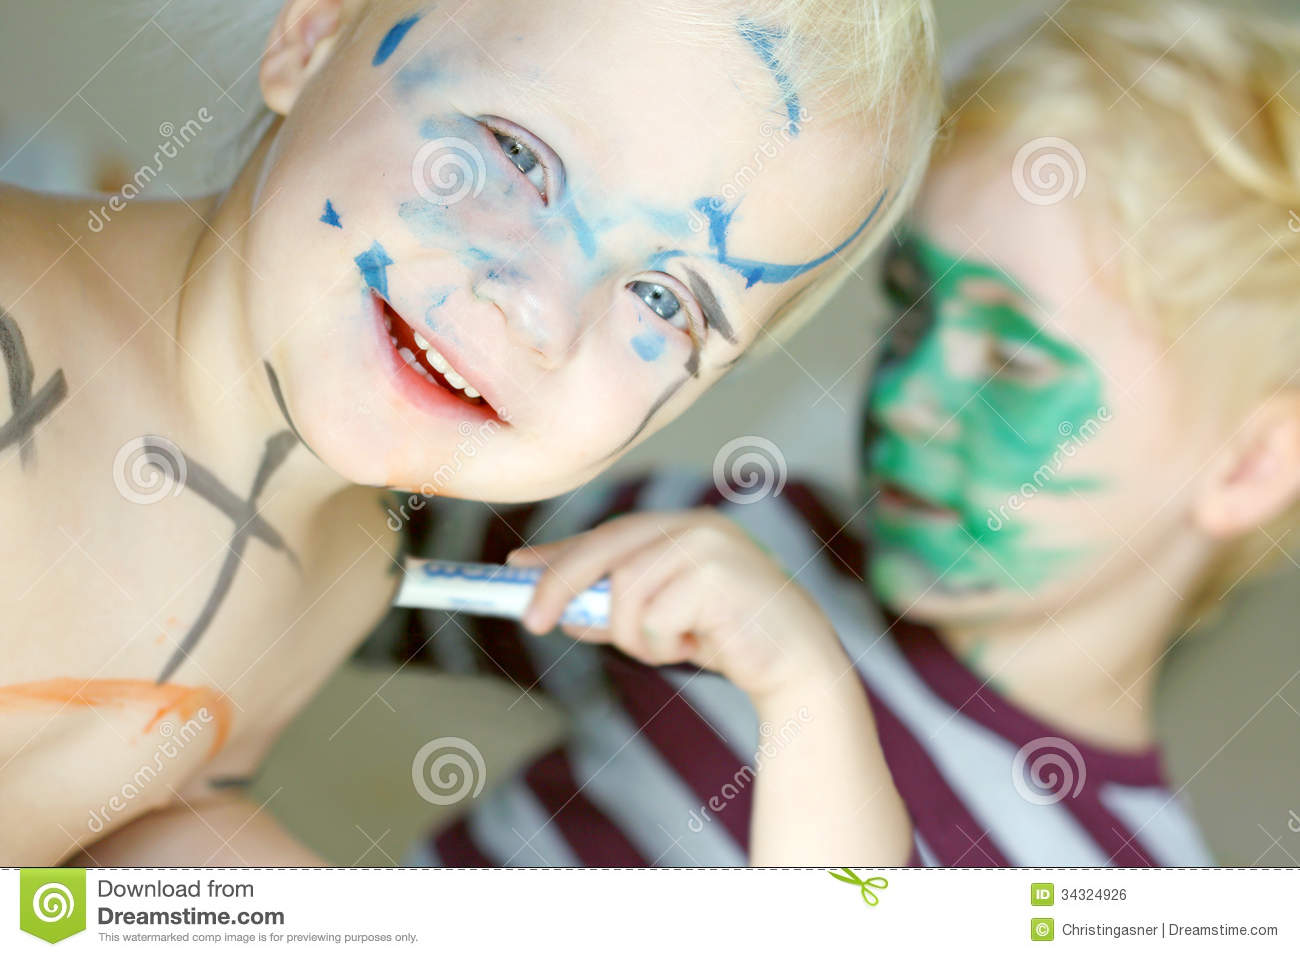 Children Coloring Their Faces With Markers Stock Photo